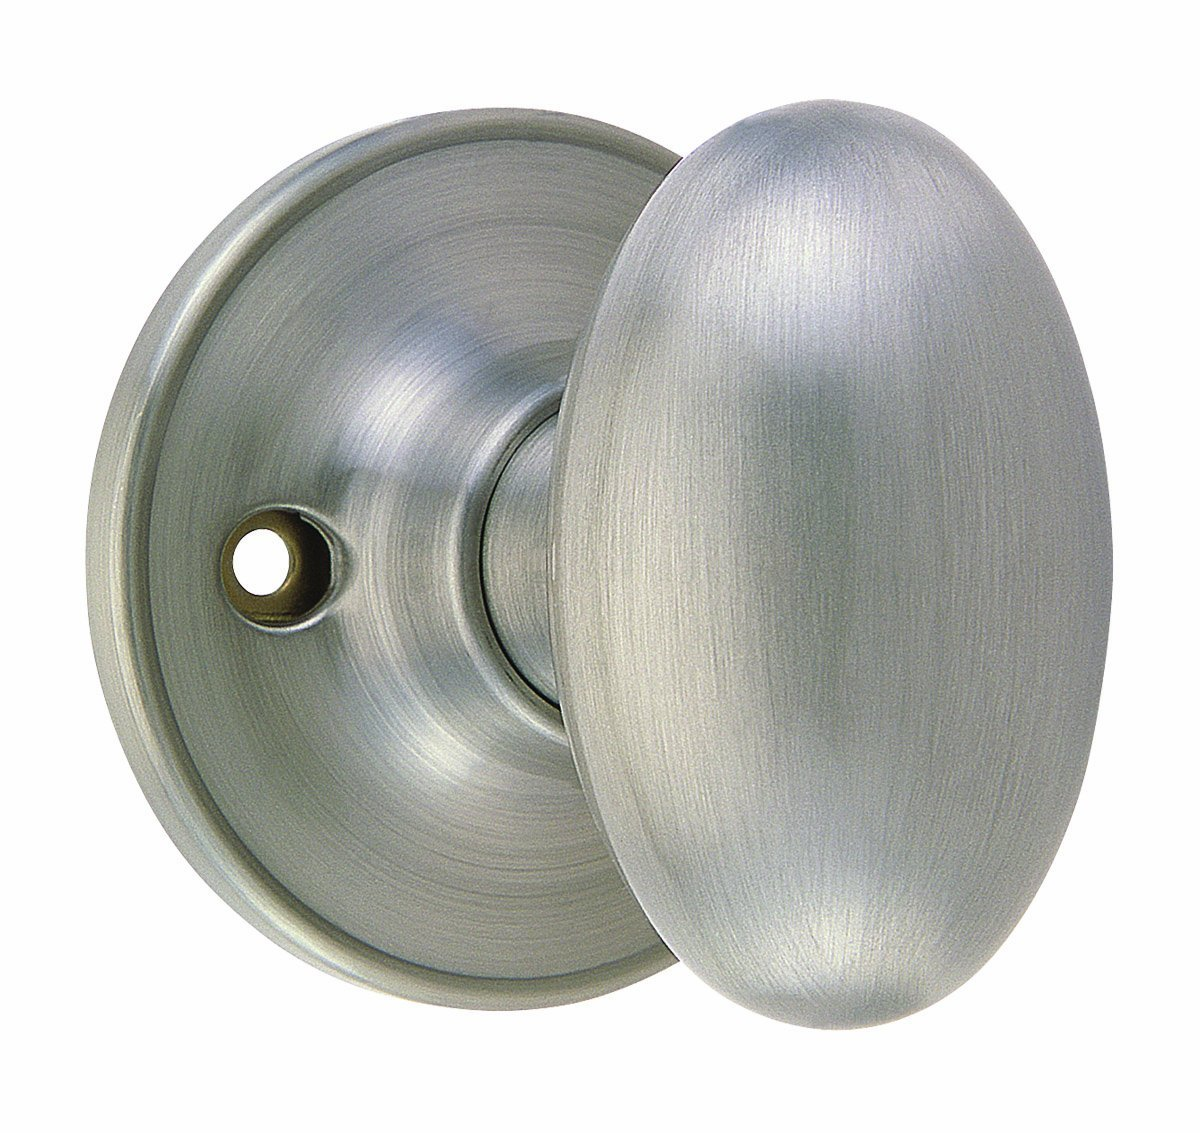 Beau Get Quotations · Design House 750620 Egg Dummy Knob, Reversible For Left Or  Right Handed Doors, Satin